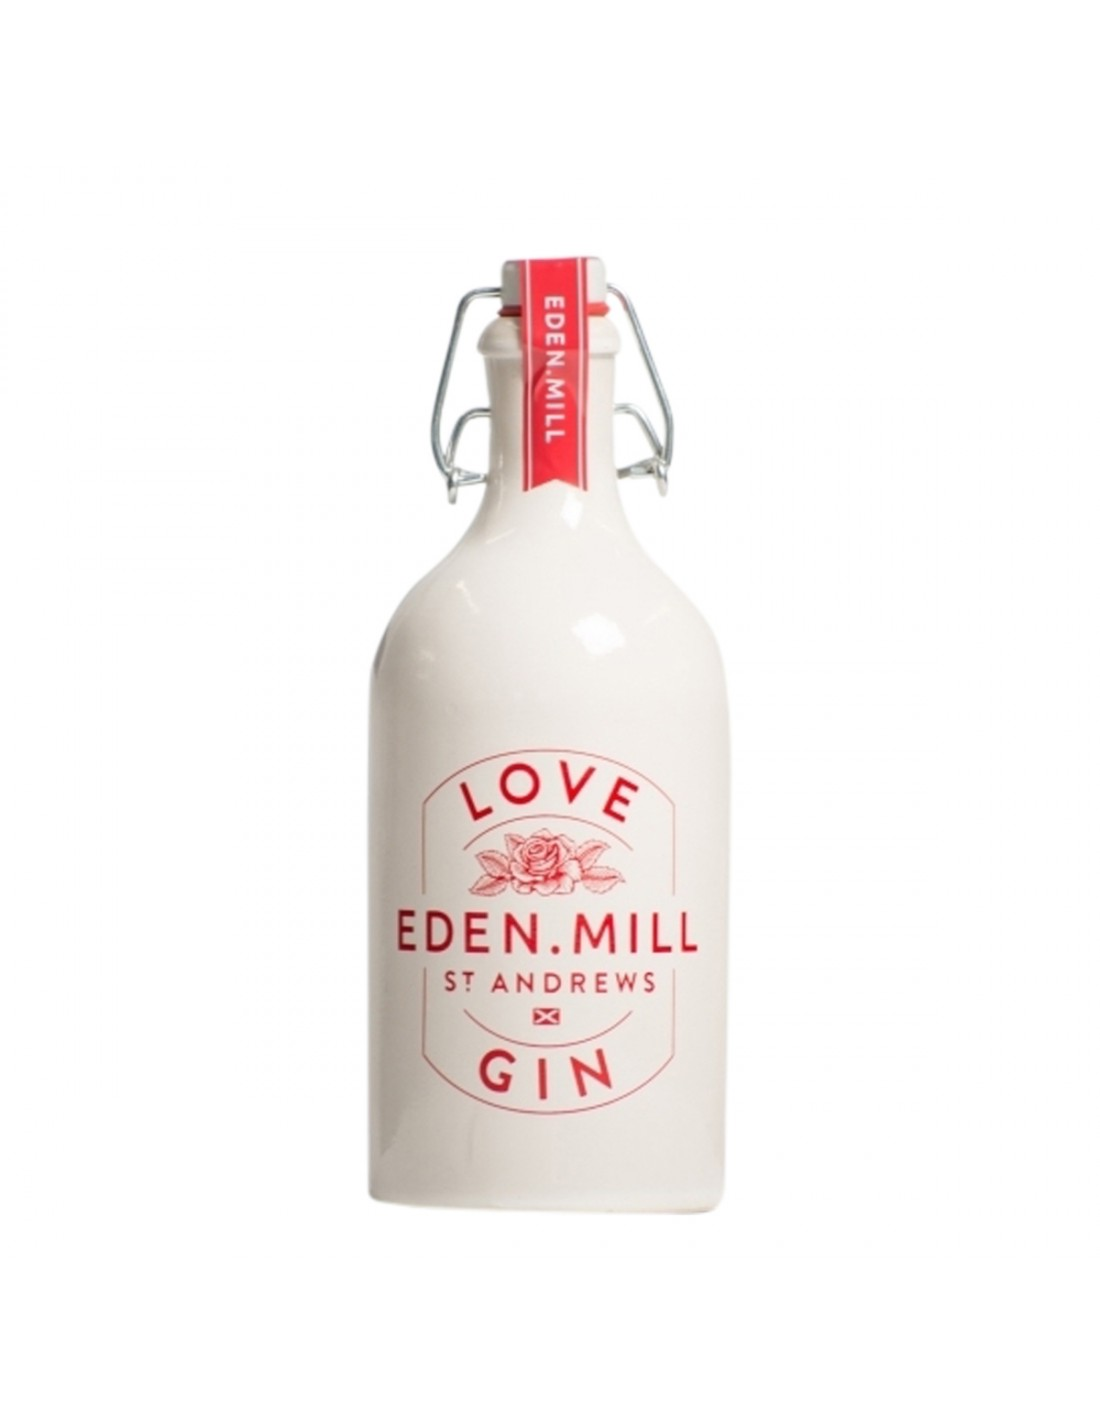 Gin Eden Mill Love 42% alc., 0.7L